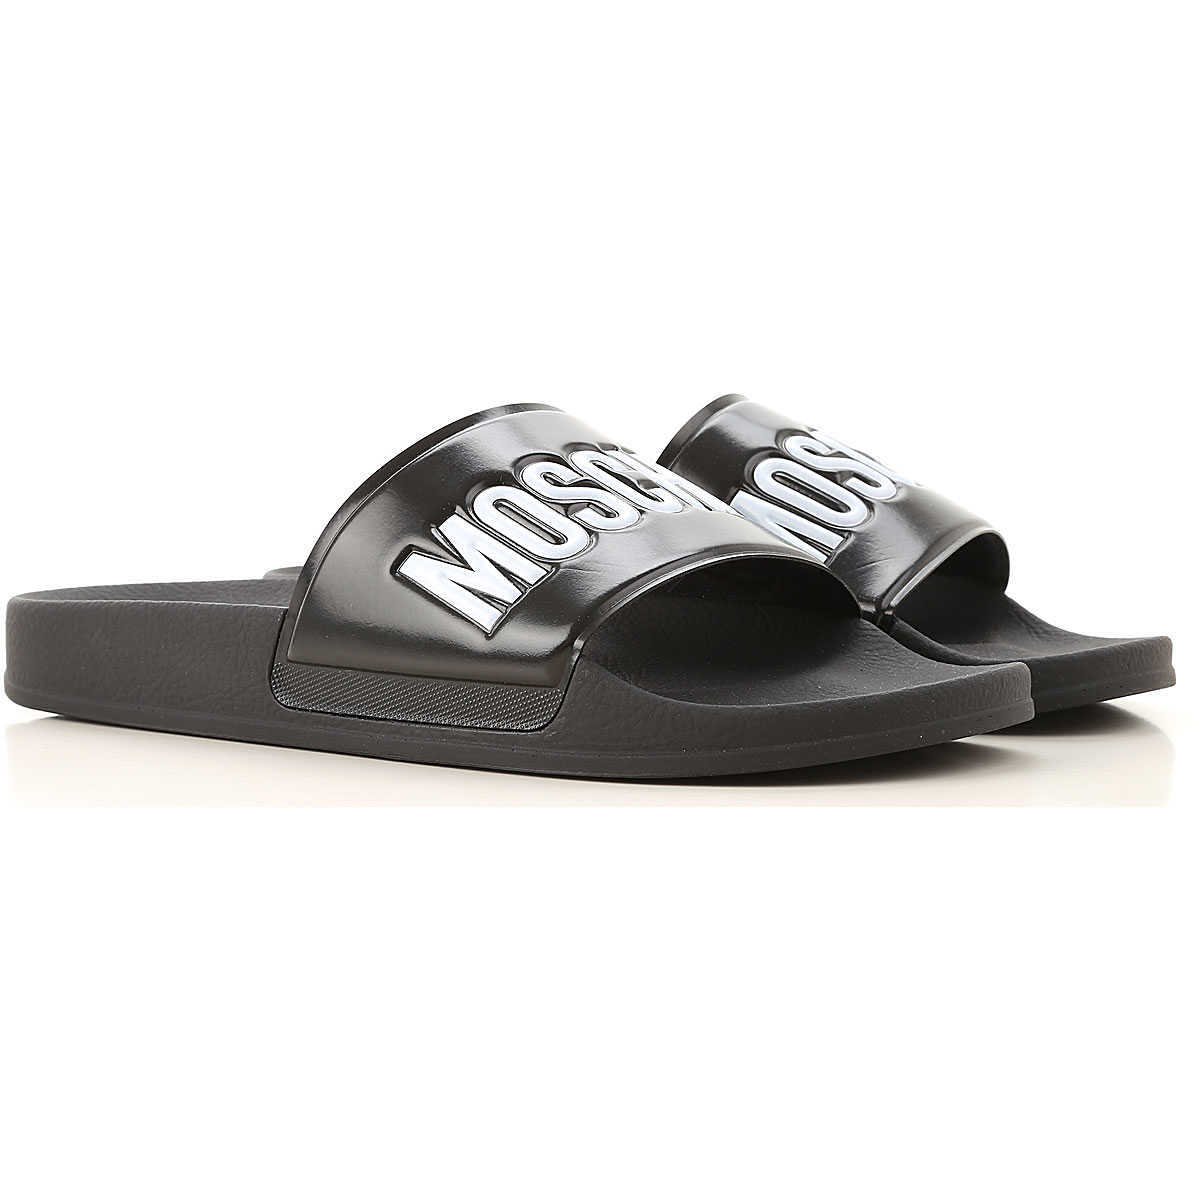 Moschino Sandals for Men